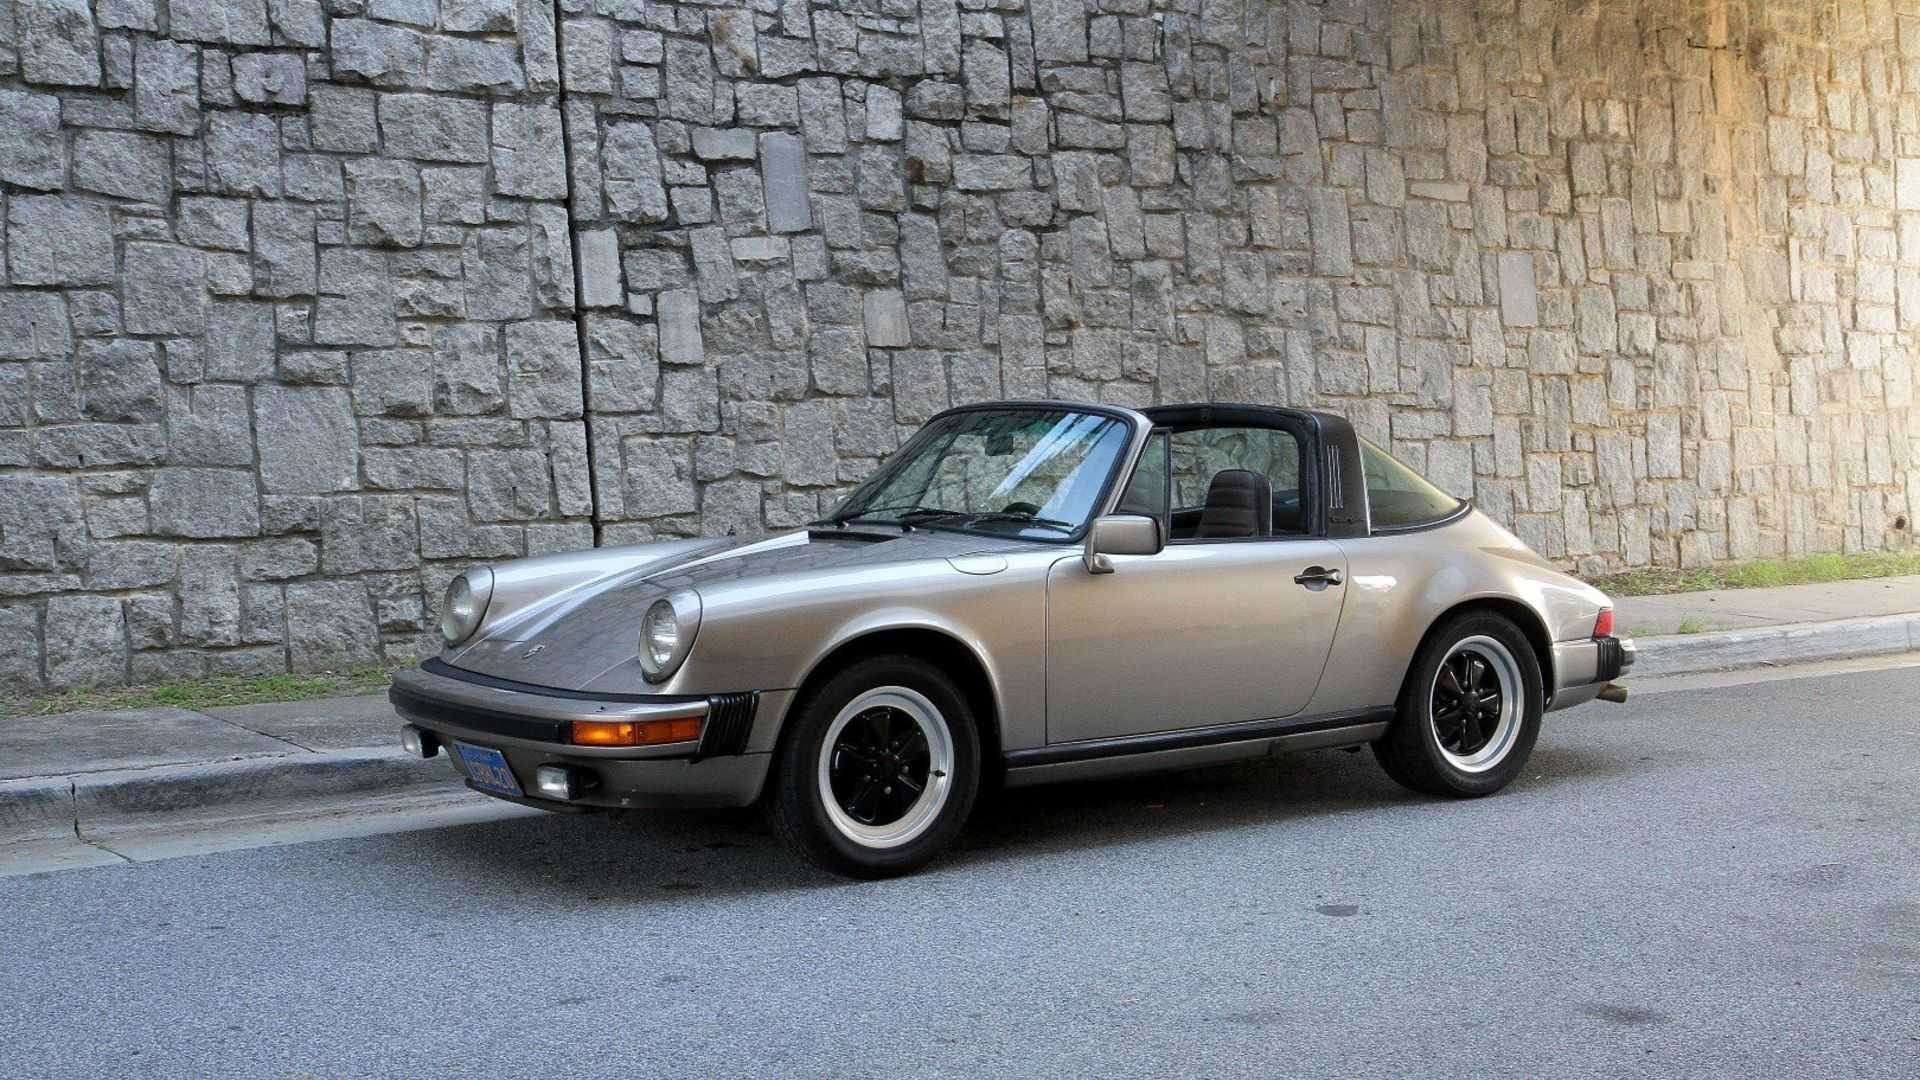 1983 porsche 911 sc formerly owned by alton brown is for sale motorious. Black Bedroom Furniture Sets. Home Design Ideas